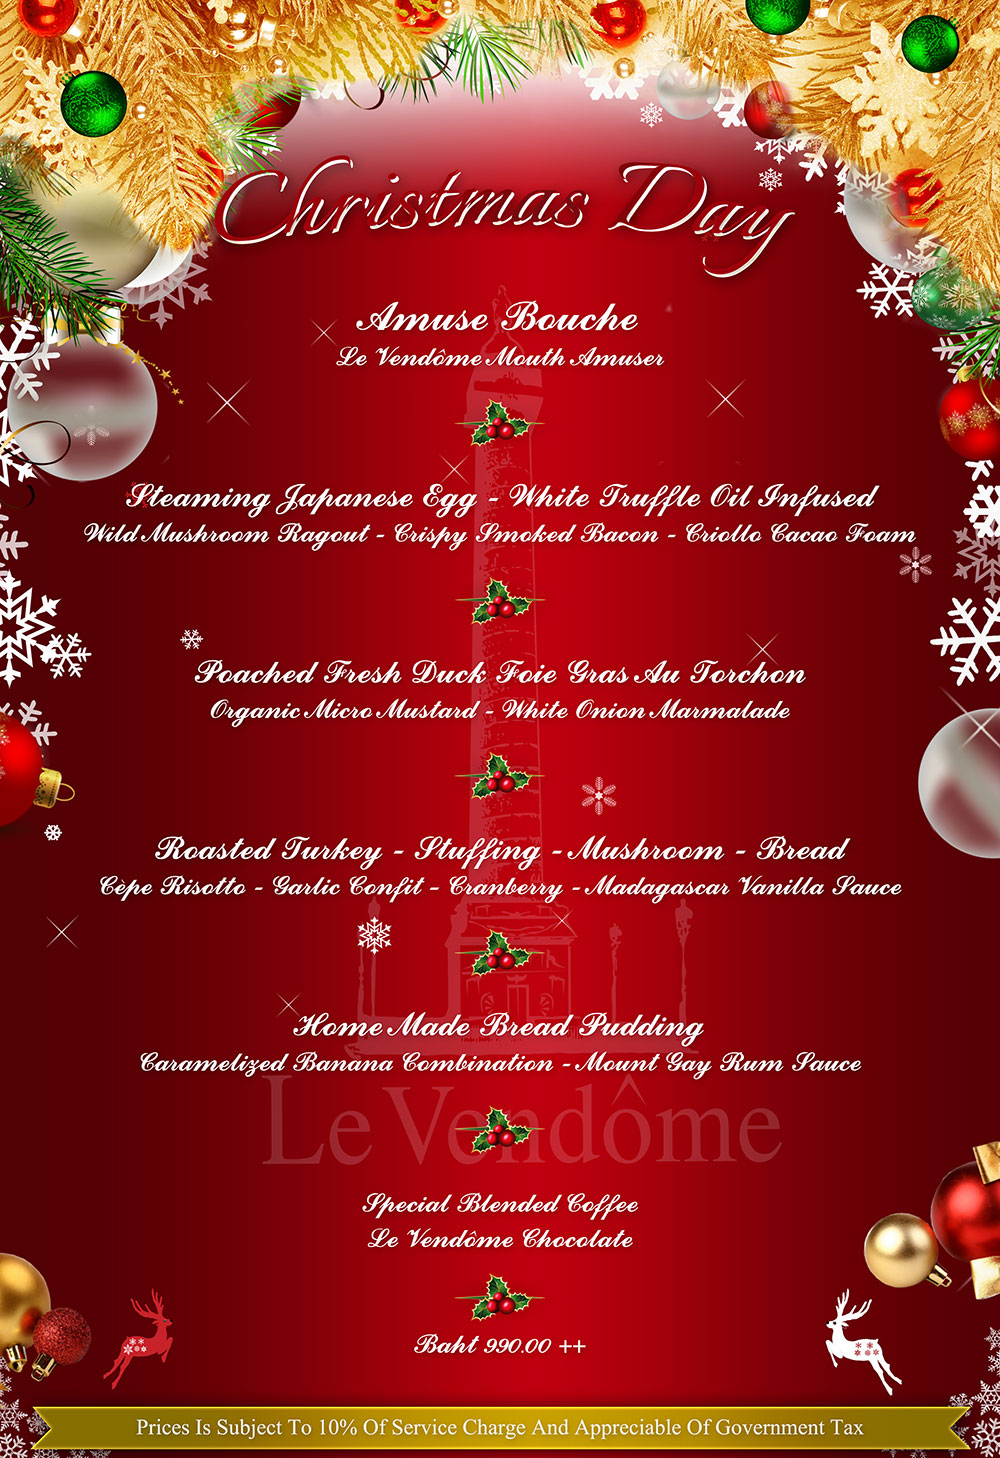 Christmas Day In France.Le Vendome Christmas Day Menu